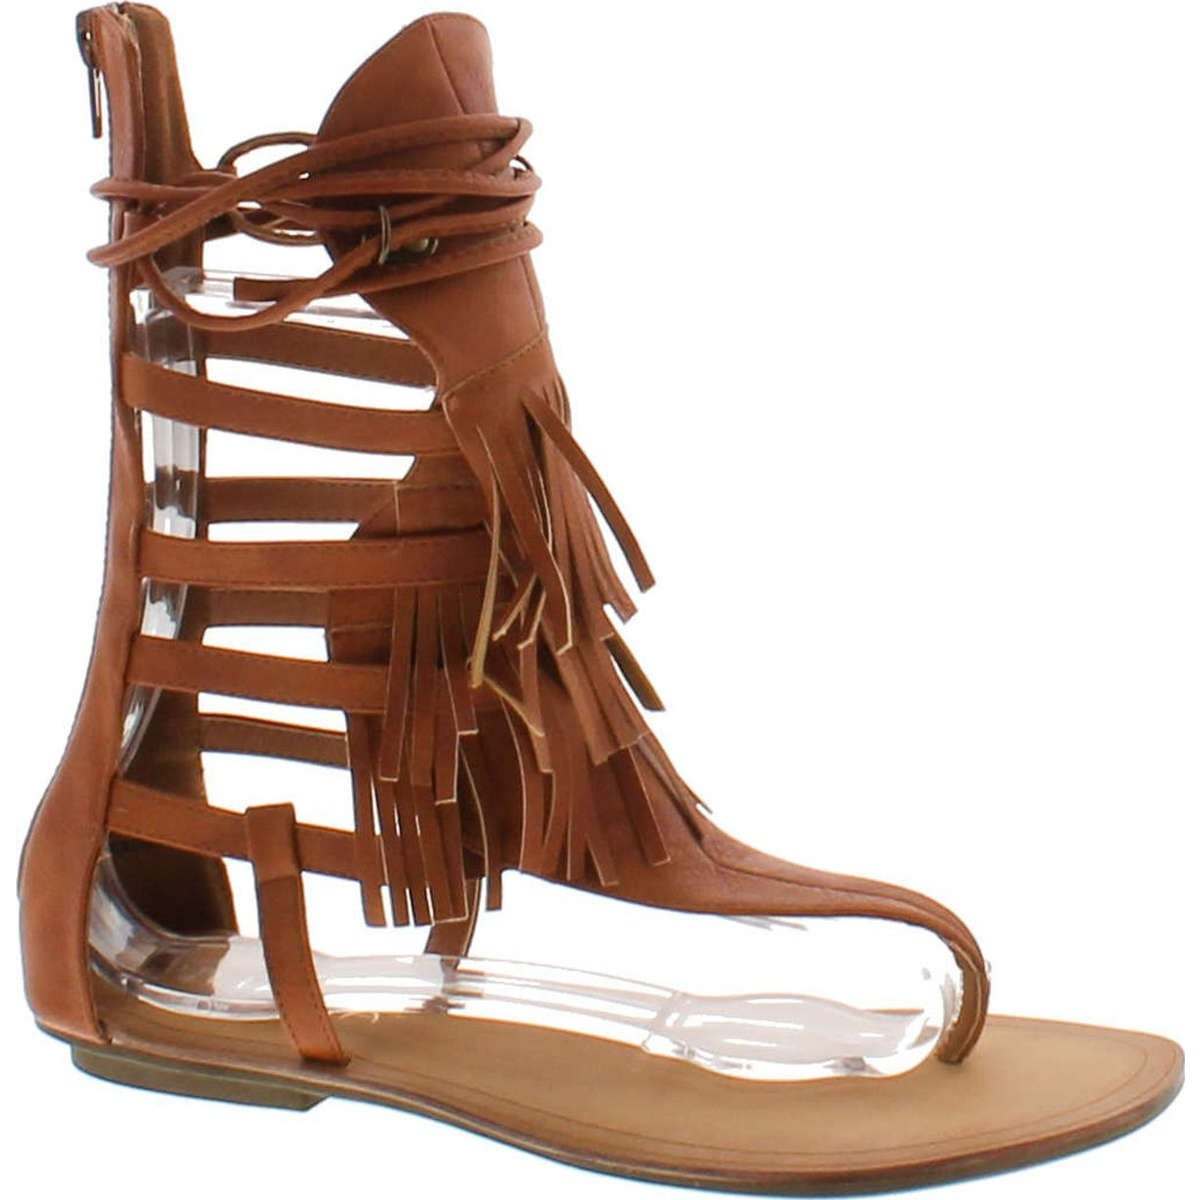 beaadd51e4aec Shop Liliana Avis-4 Women s Flat Lace Up 3 Layers Fringe Flip Flop Gladiator  Sandal - Free Shipping On Orders Over  45 - Overstock - 14820298